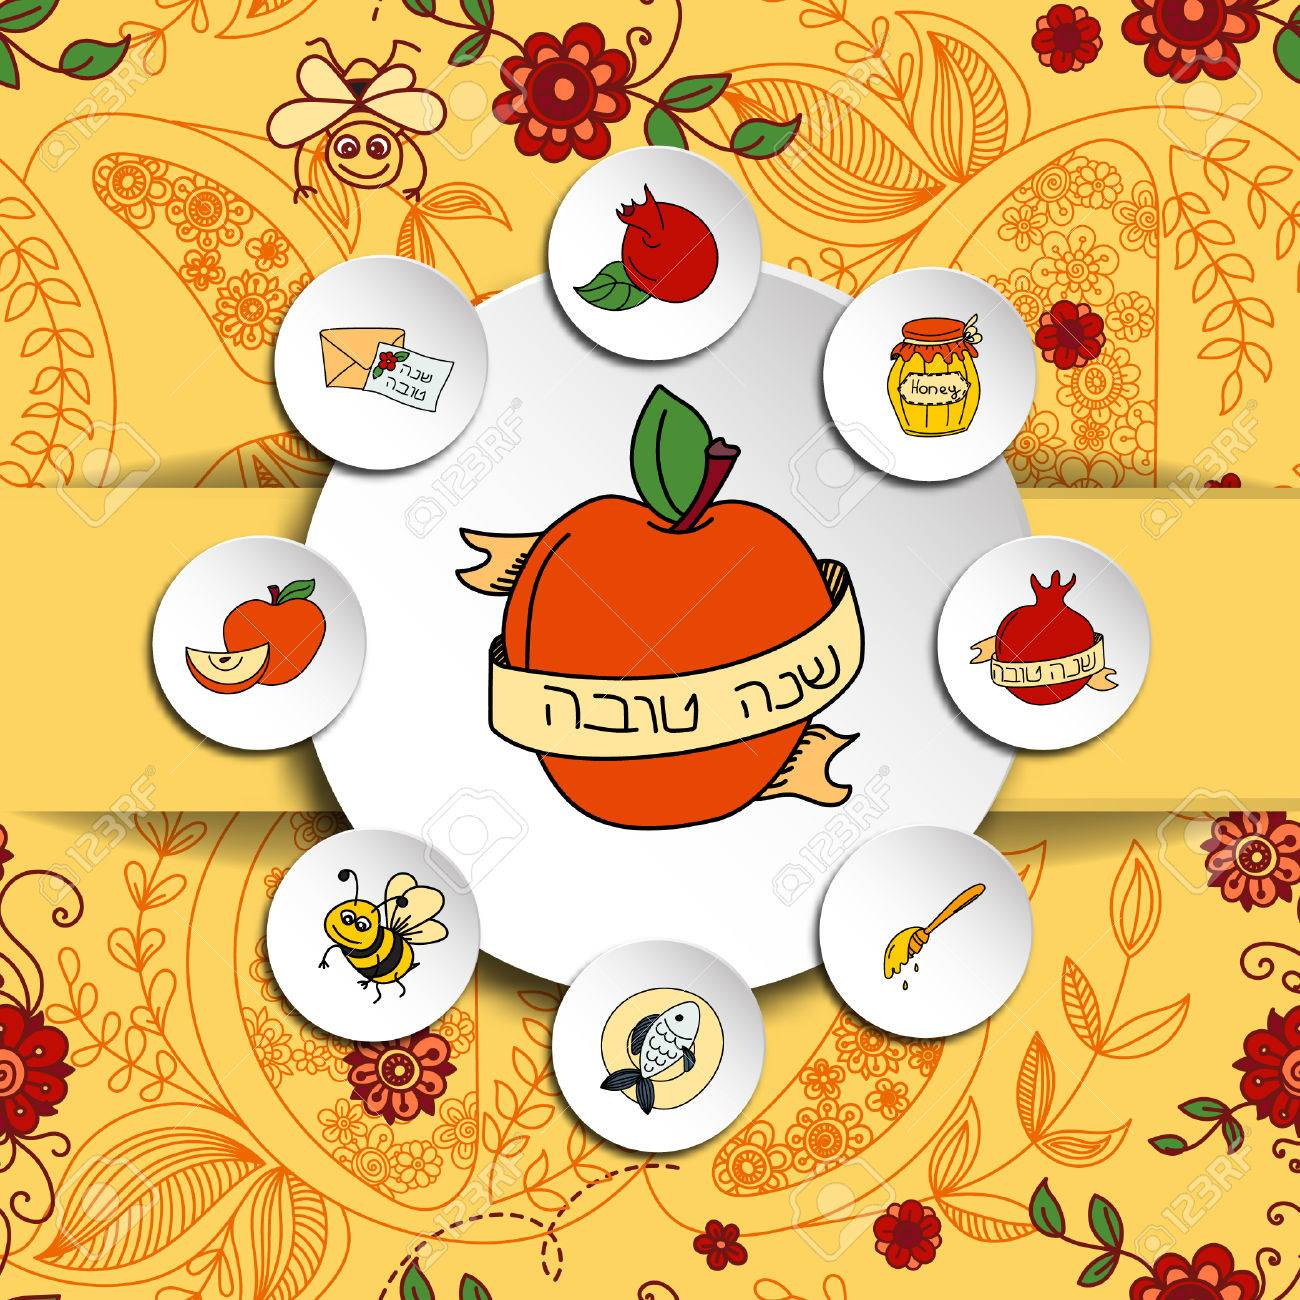 Rosh Hashanah 2017 Latest News Images And Photos Crypticimages